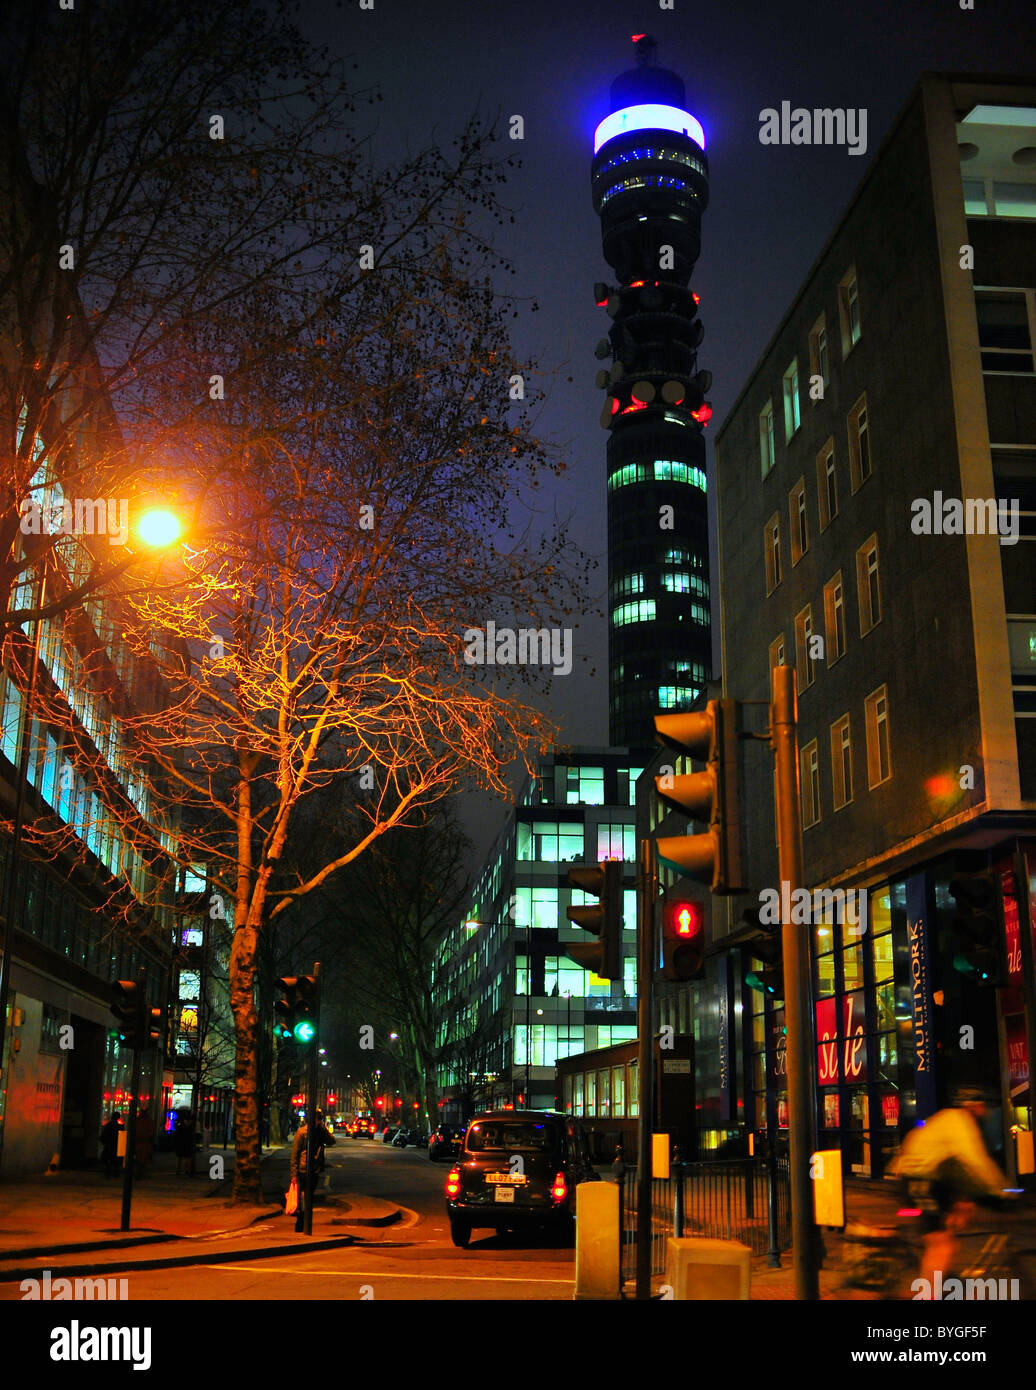 Straßenbild in der Nacht mit BT tower Post Office Tower, London Stockbild